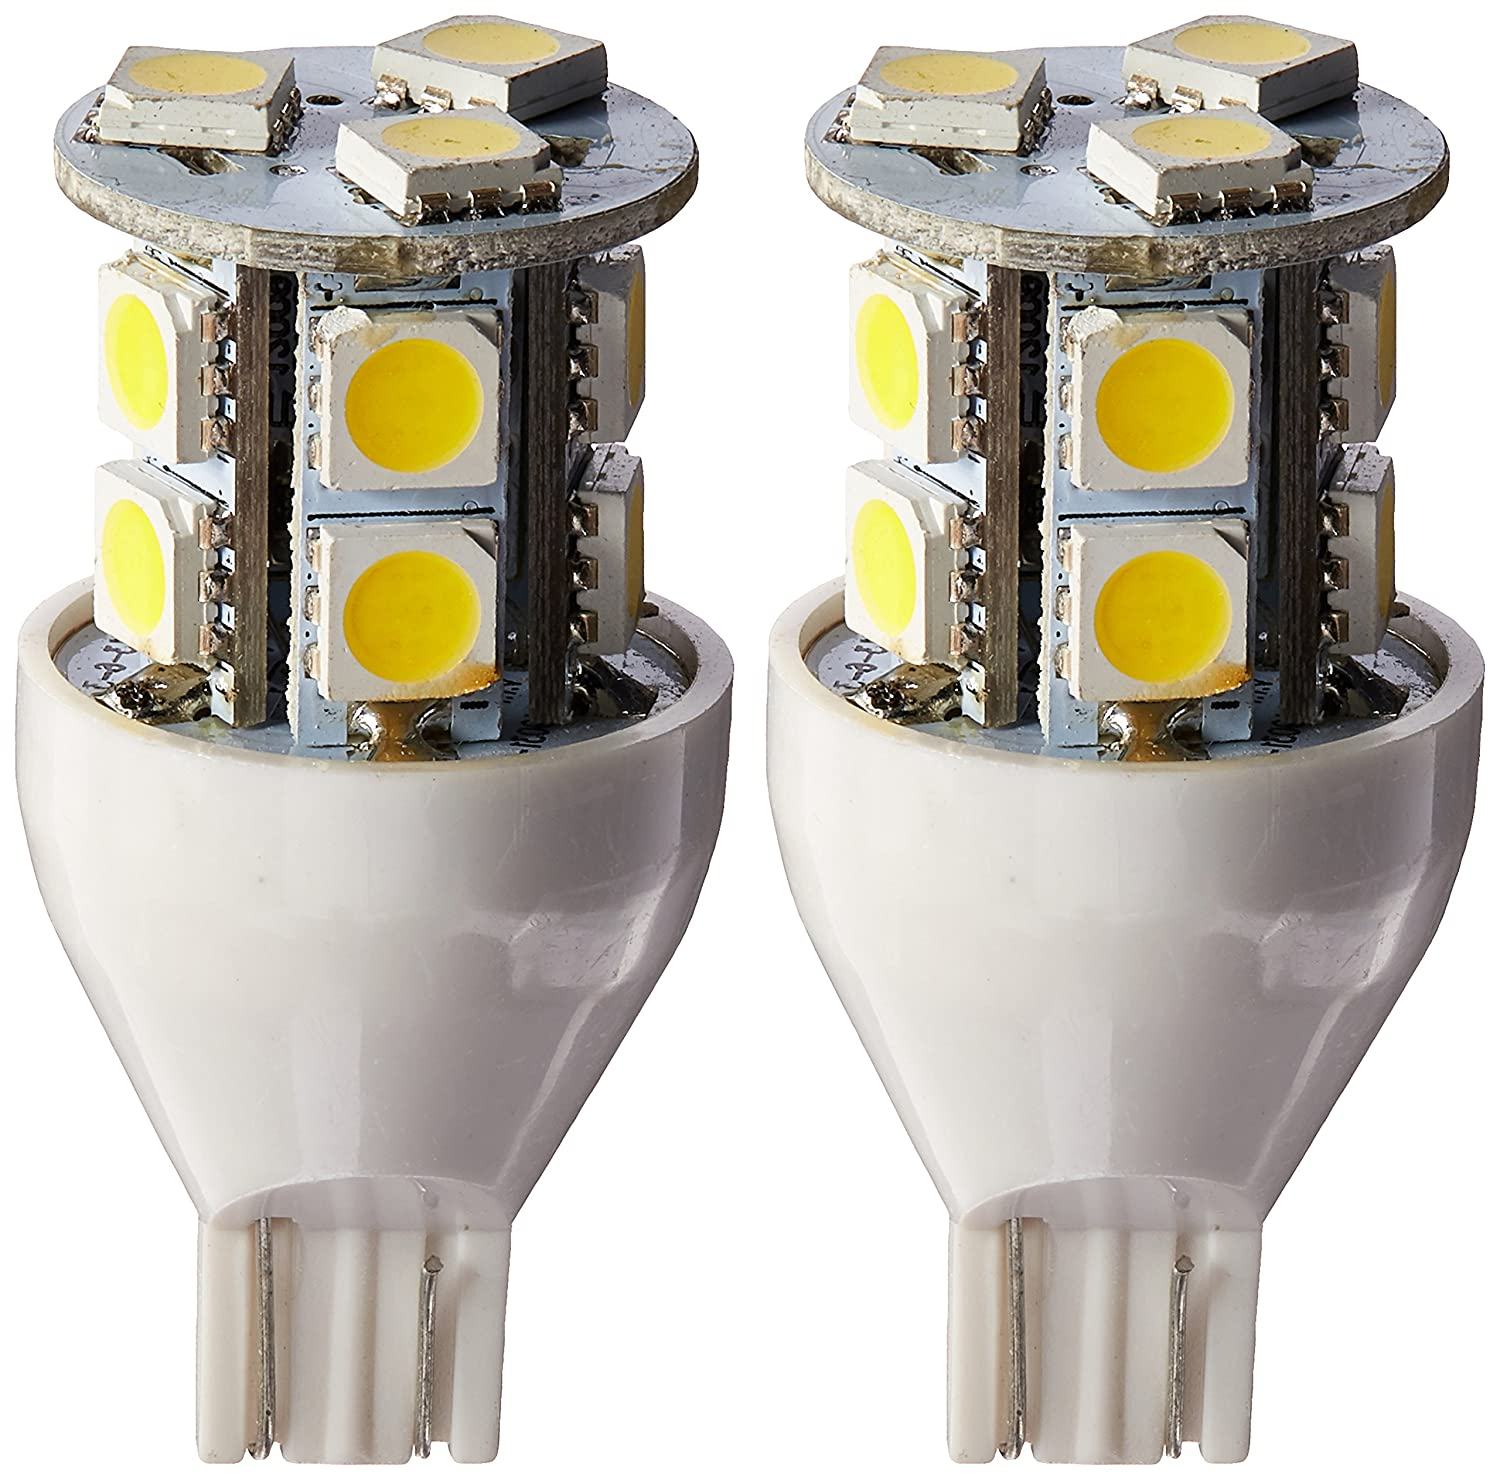 Gold Stars 92111802 Natural White LED Replacement Light Bulb (921/T15 Wedge base 120 Lumens 12v or 24v)